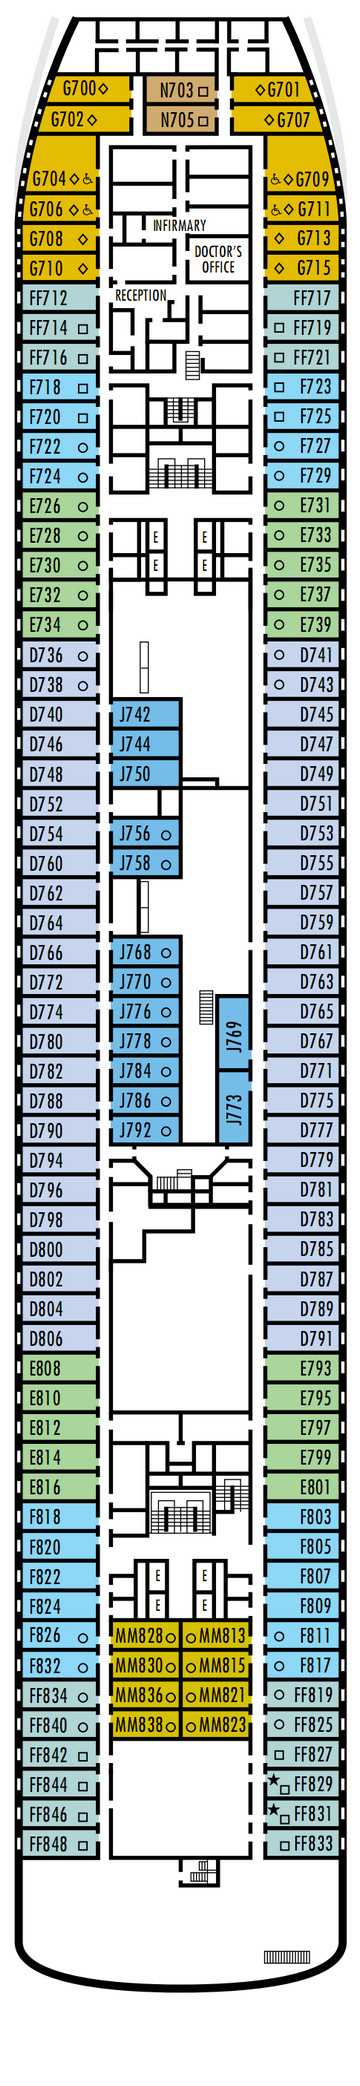 Veendam Deck 4 - A Deck layout